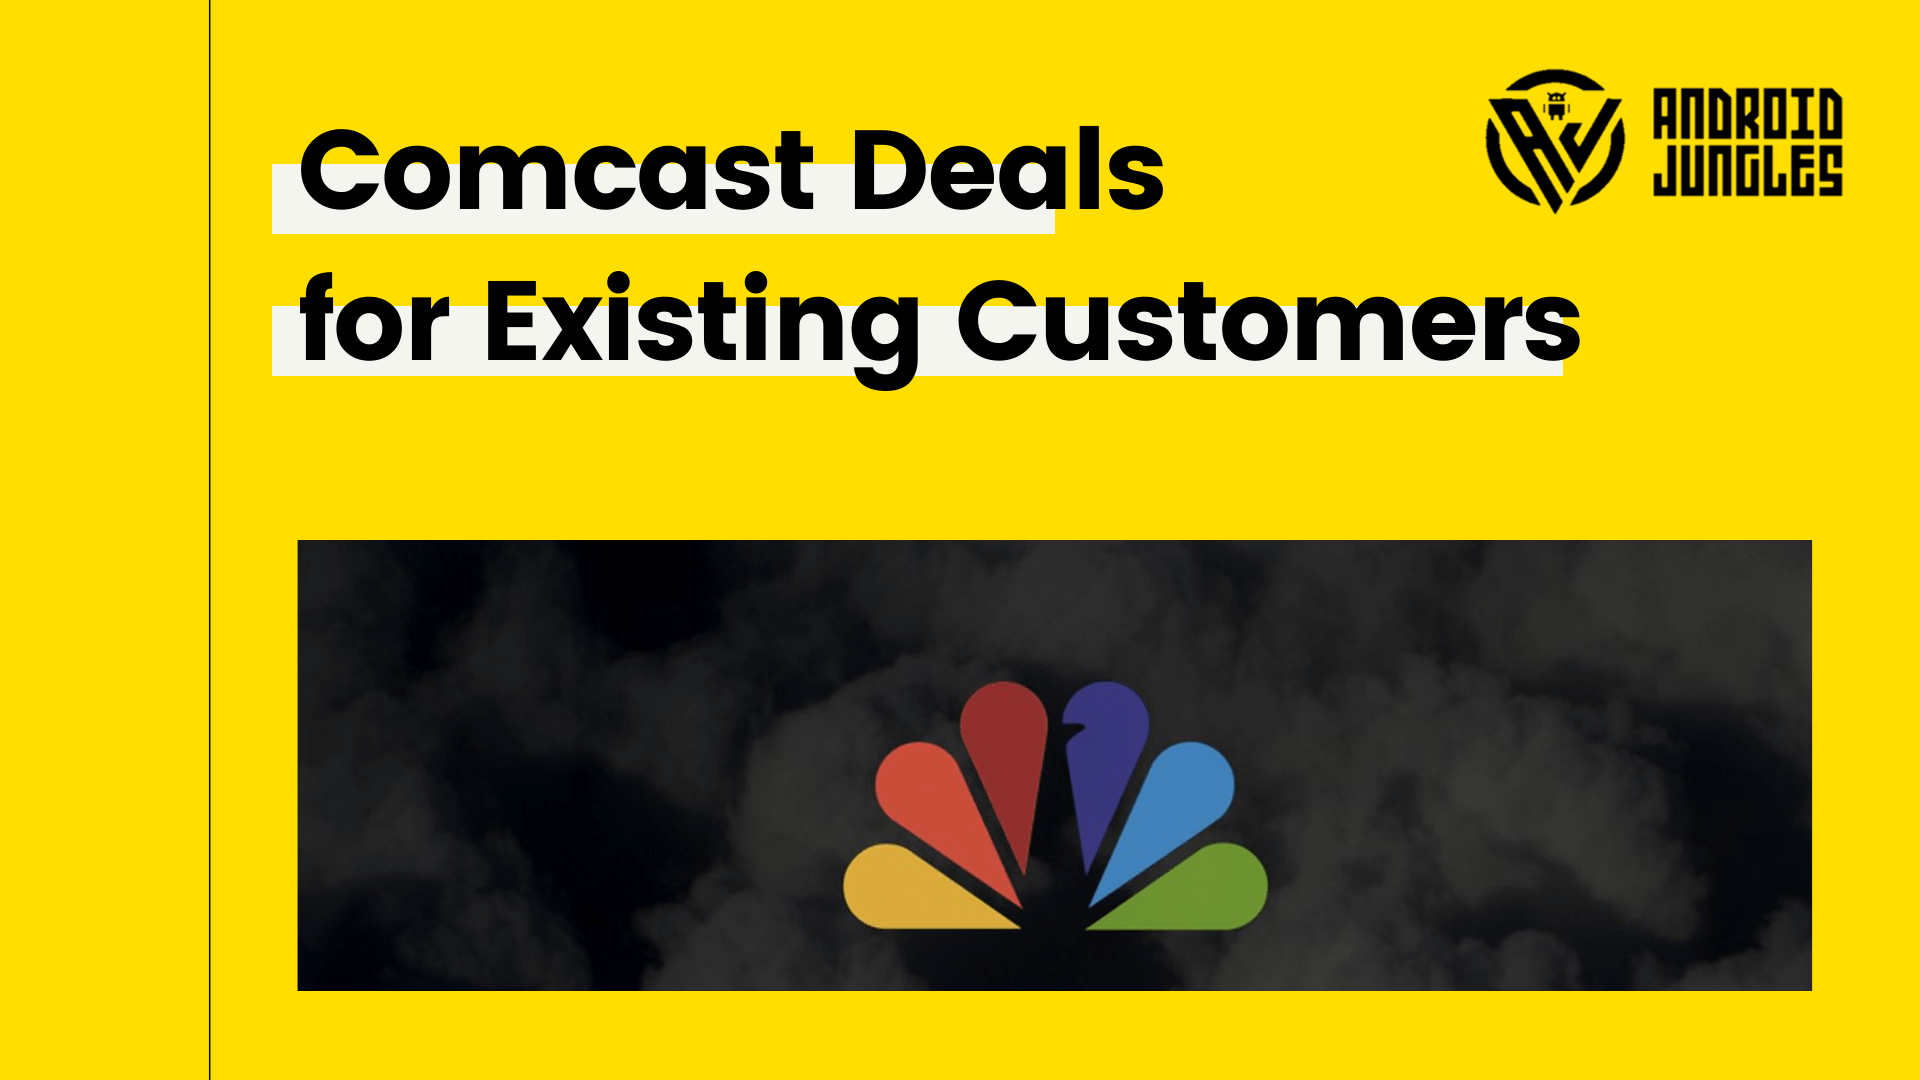 Comcast Deals for Existing Customers